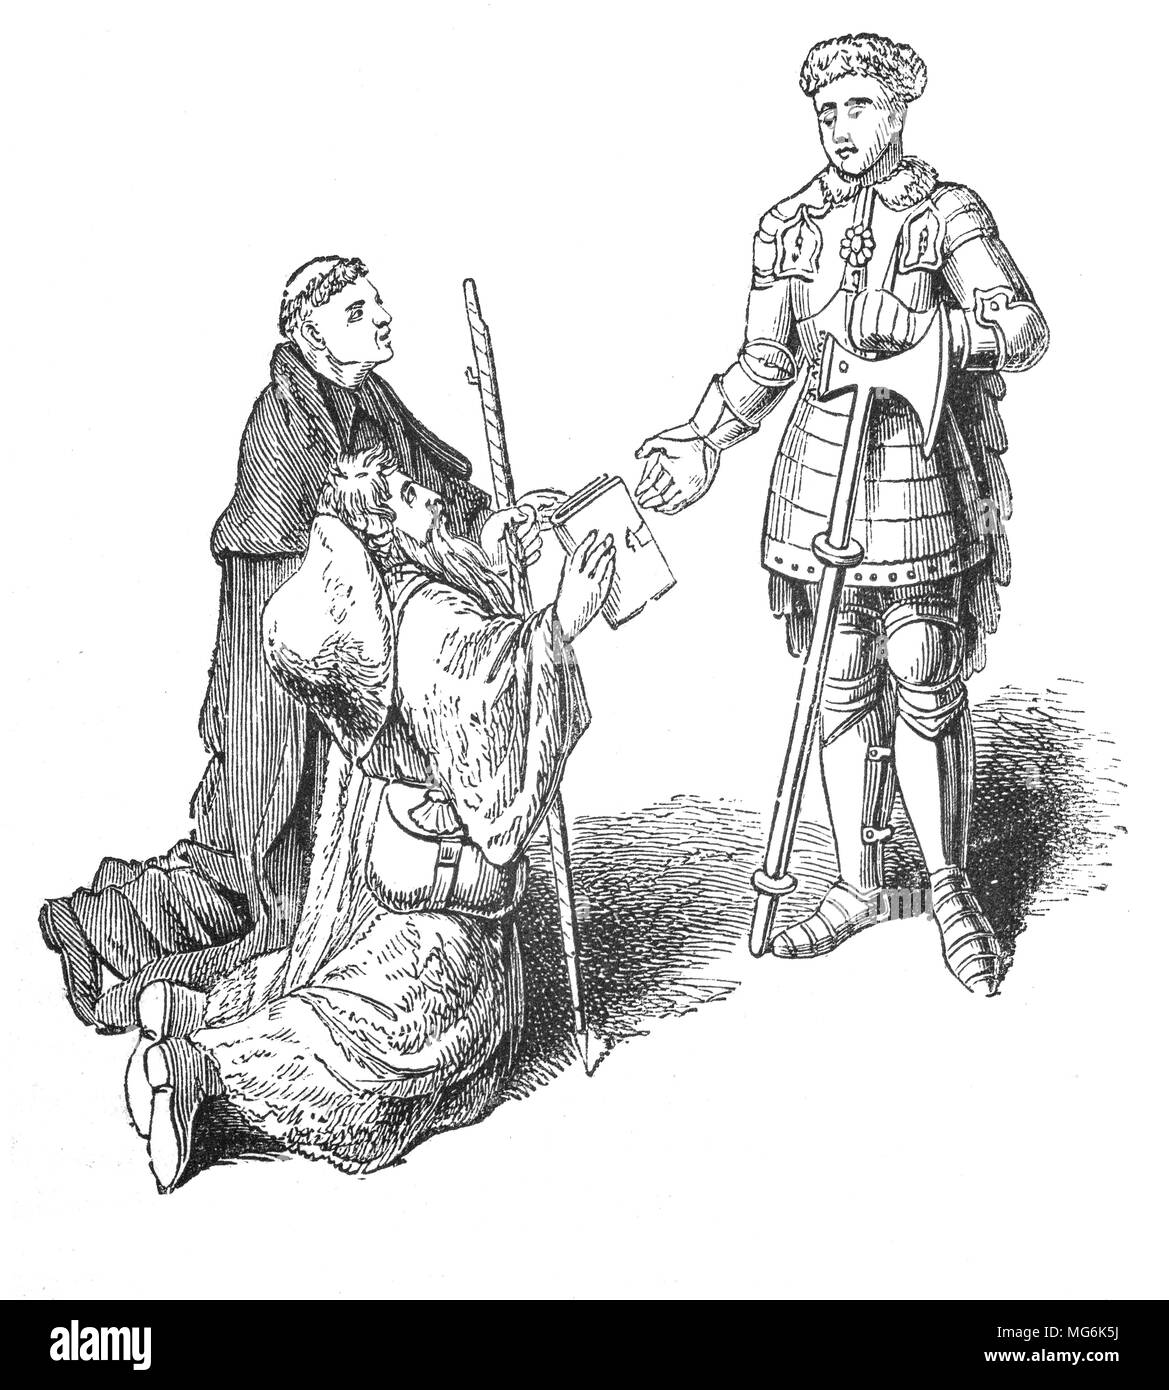 John Lydgate of Bury (1370 – 1451), monk and poet, presenting his poem, 'The Pilgrim' to Richard de Beauchamp, the 13th Earl of Warwick. He was born in Lidgate, near Haverhill, Suffolk, England. With a prodigious poetic output, he sought and obtained patronage for his literary work at the courts of Henry IV of England, Henry V of England and Henry VI of England. His patrons included, amongst many others, the mayor and aldermen of London, the chapter of St. Paul's Cathedral, Richard de Beauchamp. - Stock Image